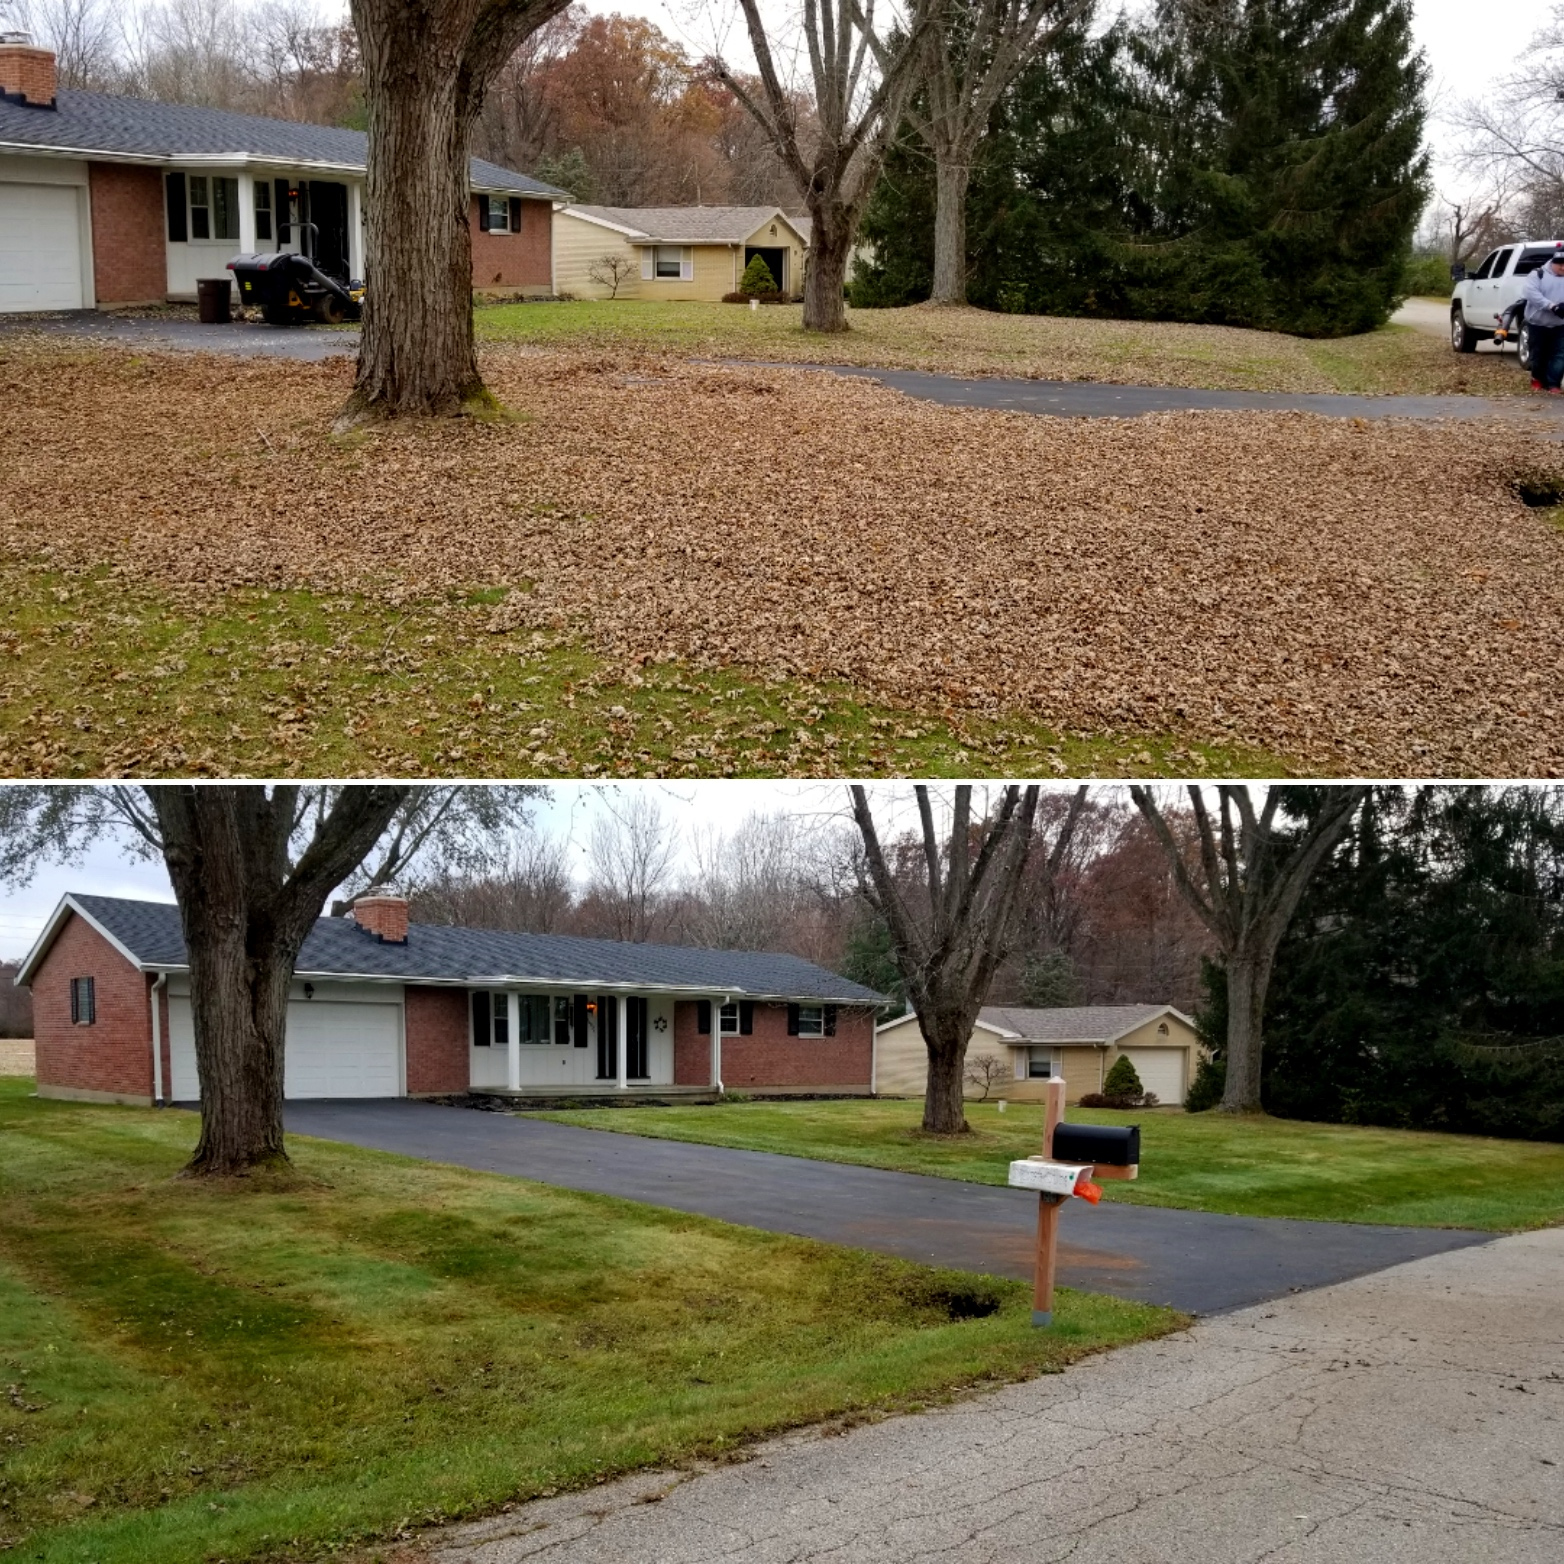 A fall clean-up including leaf removal and flower bed clean-out